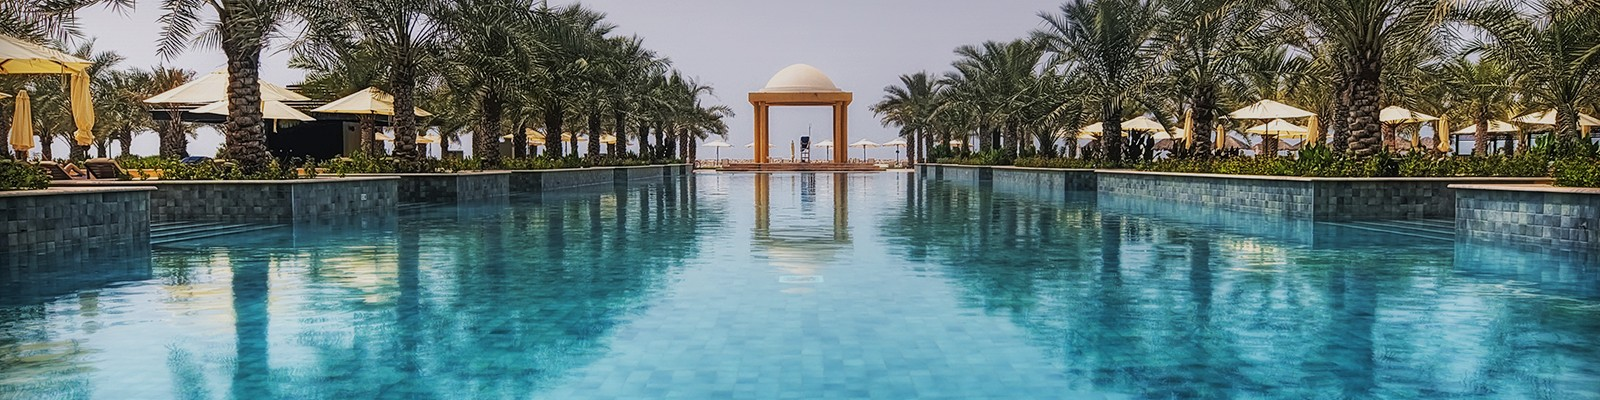 ras al khaimah luxury holidays header